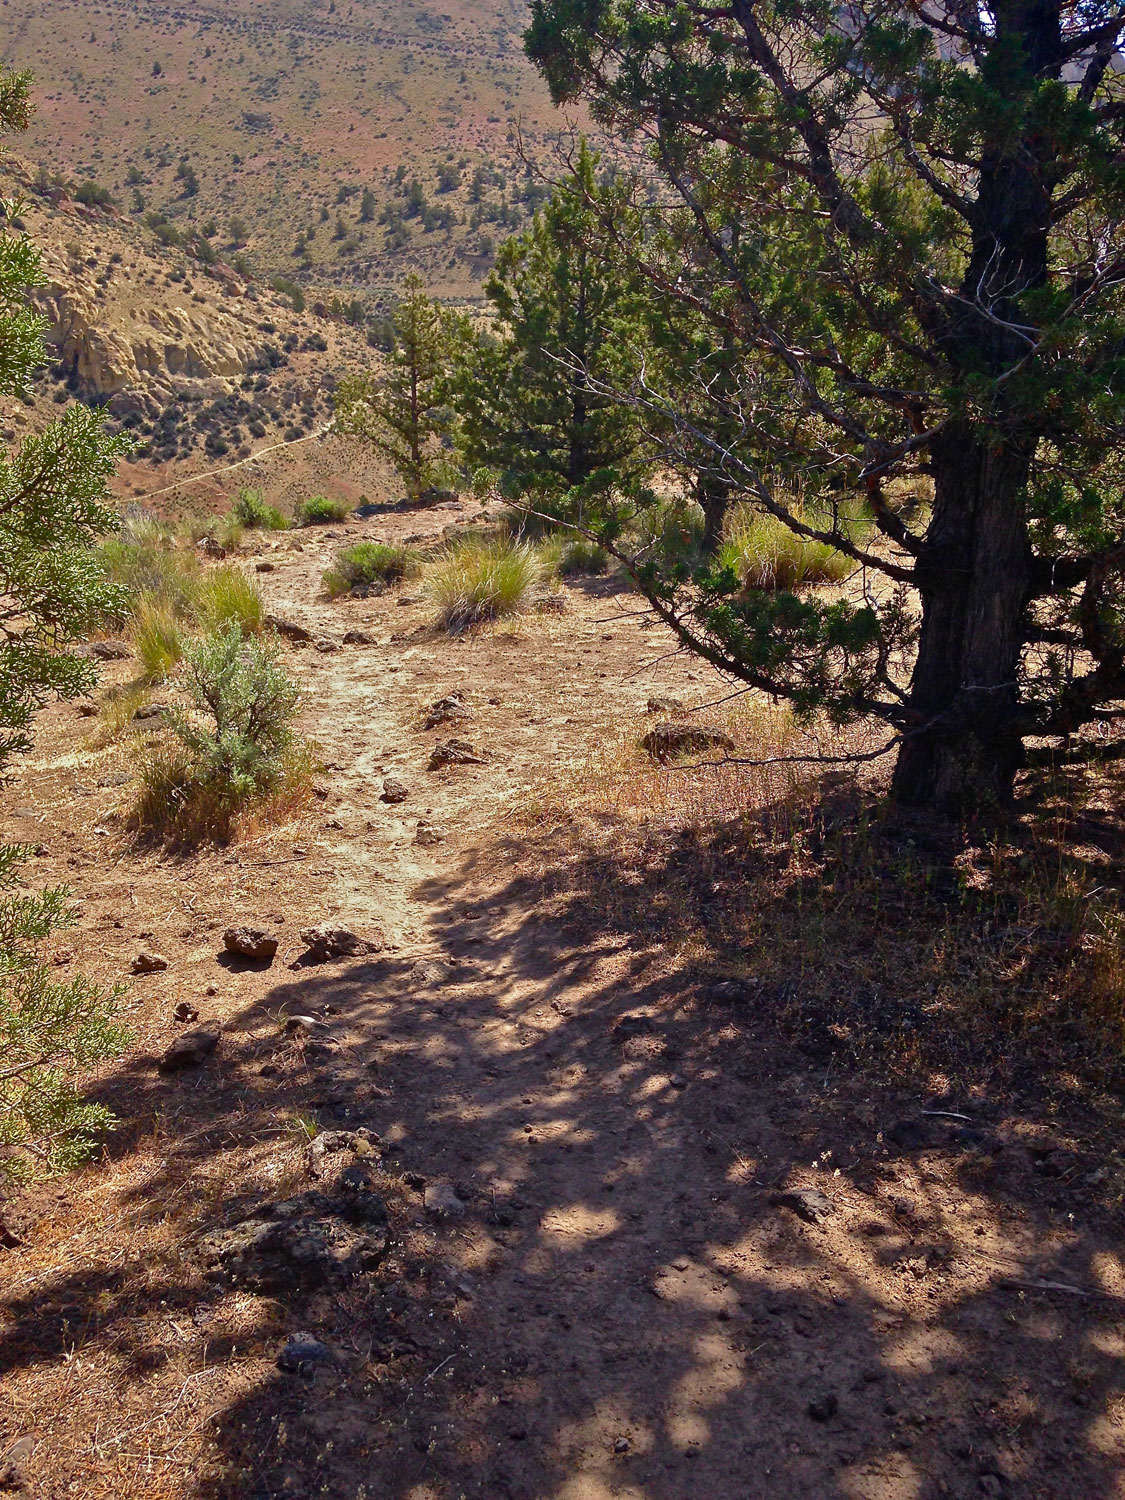 The path gets a bit more pronounced as you wander into the sage and juniper trees.